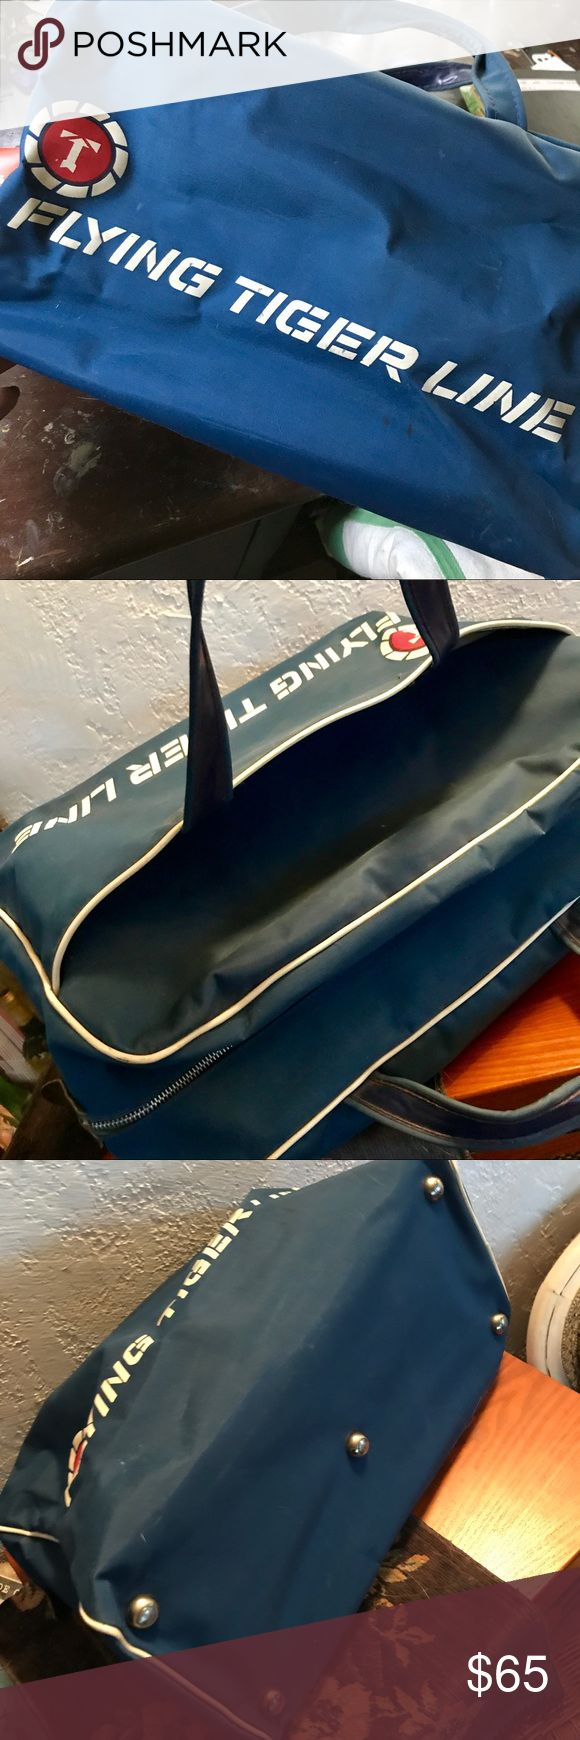 """Vintage Flying Tiger Line airline carry-on bag Original vintage/retro bag, from the 1970s as far as I can deduce, though possibly 1960s. In good used condition; metal zipper, one exterior pocket, clean lining, metal feet on bottom. A few minor marks and scuffs but no structural damage. Approx. 9"""" high, 15"""" long. Width tapers from 6.5"""" at bottom to 5"""" at top.  Great unique piece for overnight travel or daily handbag. Flying Tiger Line Bags Travel Bags"""